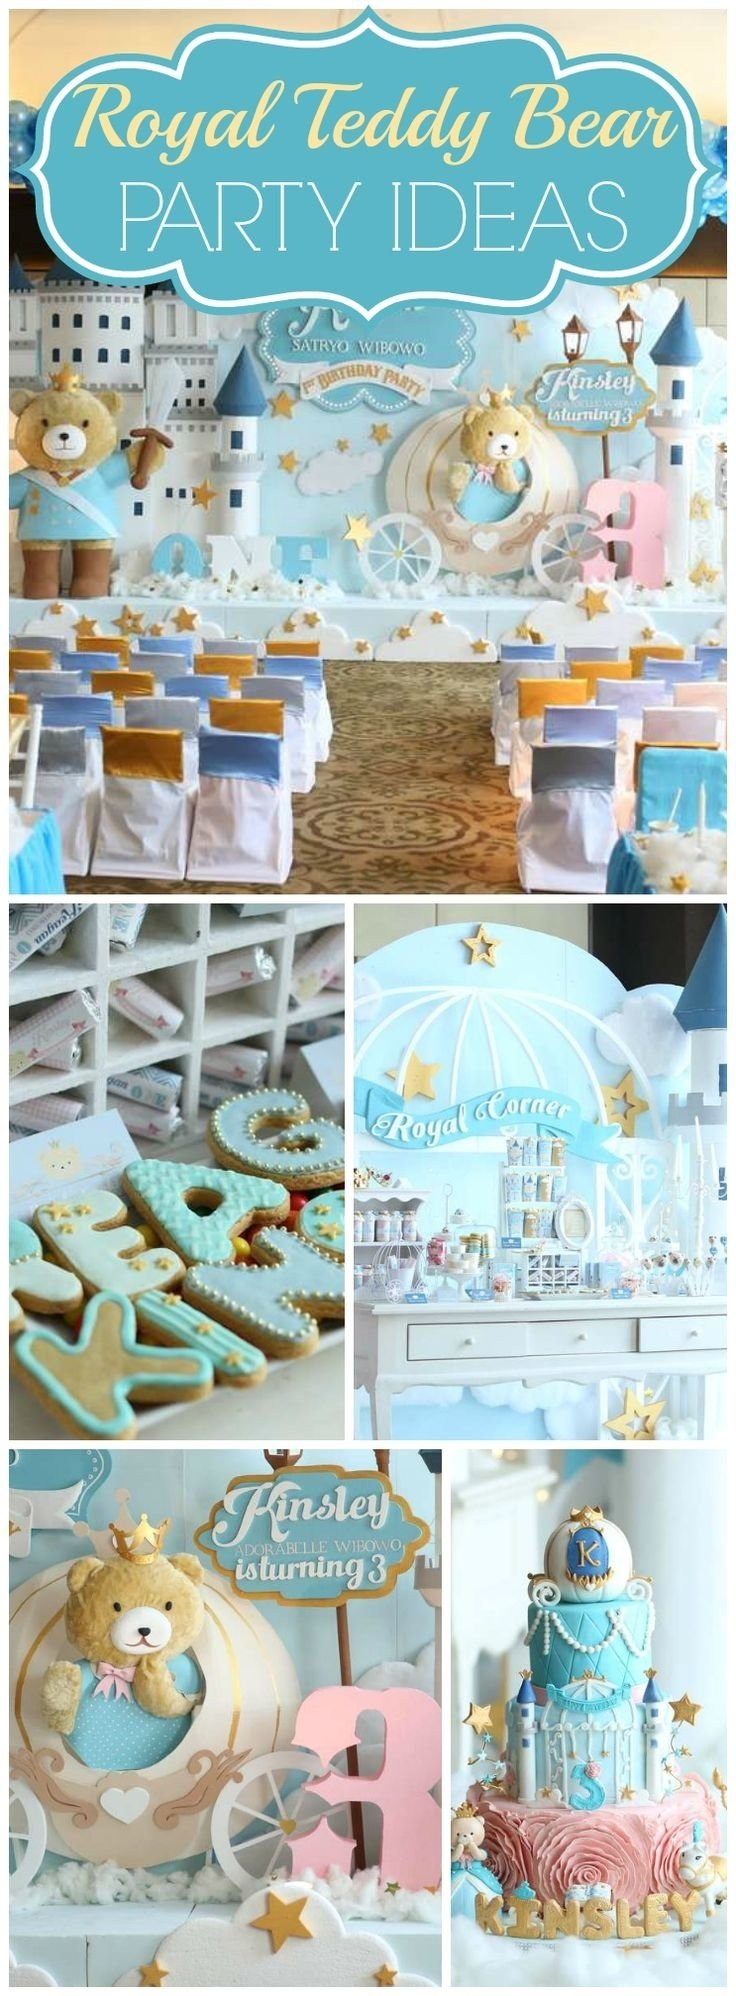 10 Elegant Princess And Prince Party Ideas 106 best royal picnic images on pinterest princess party 2020